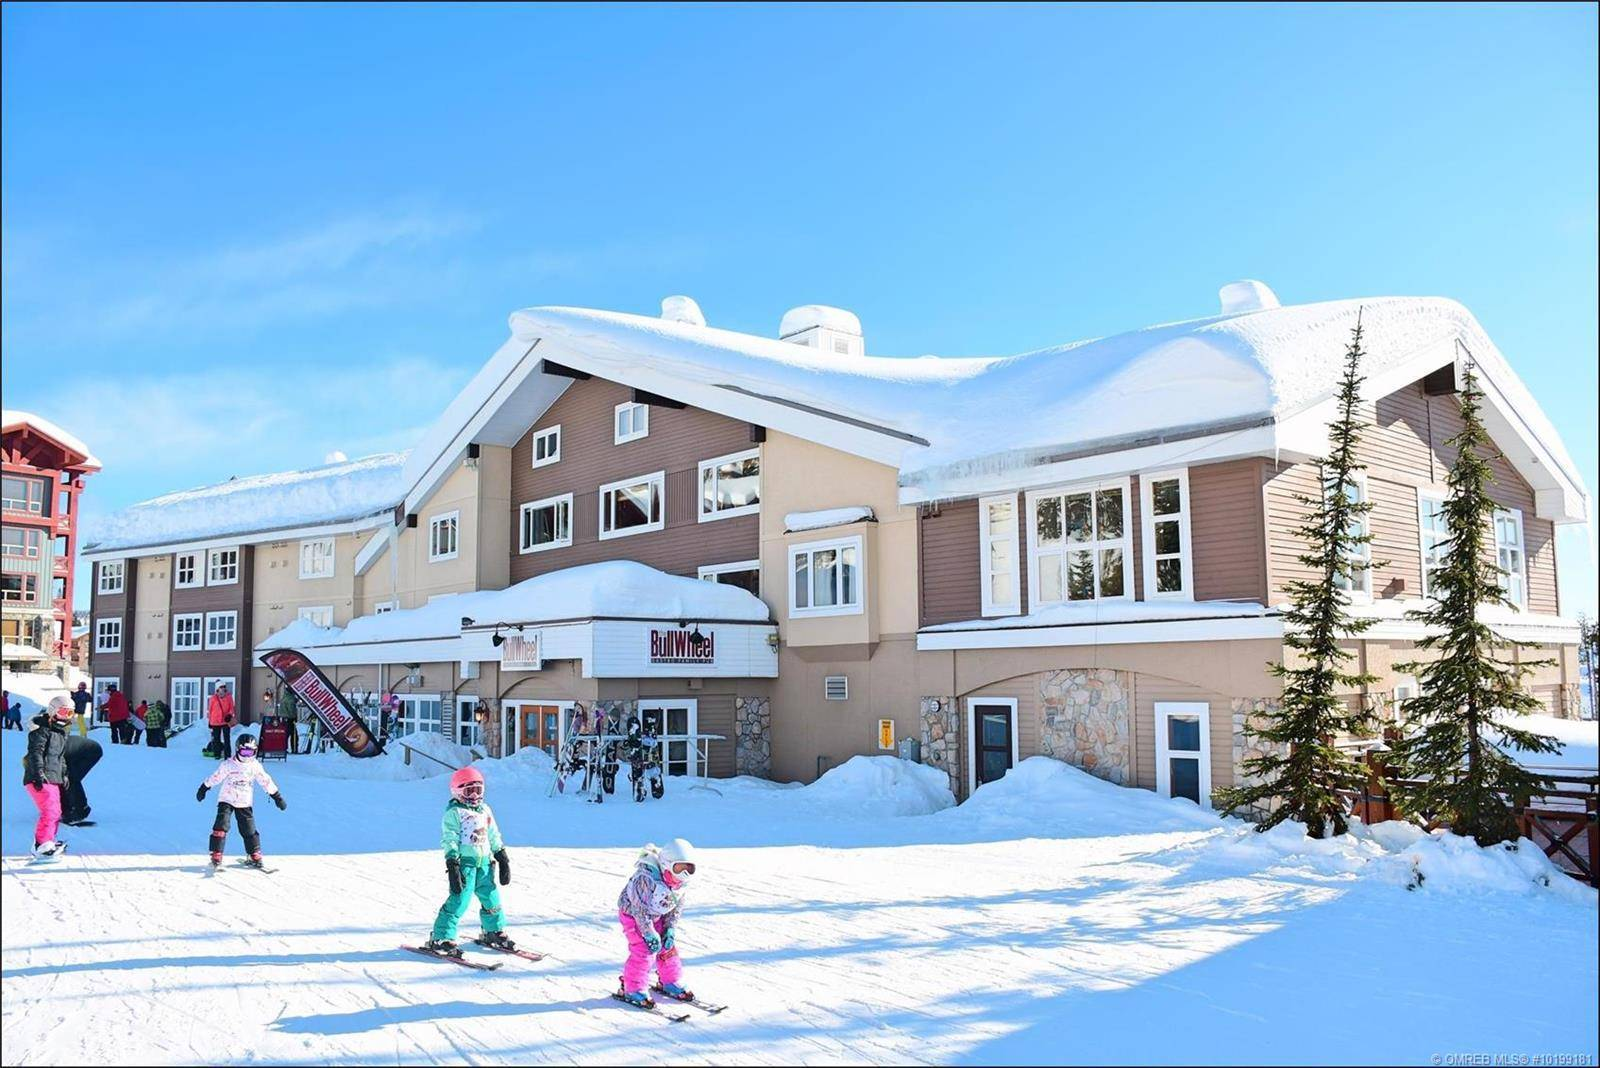 Buliding: 5275 Big White Road, Big White, BC